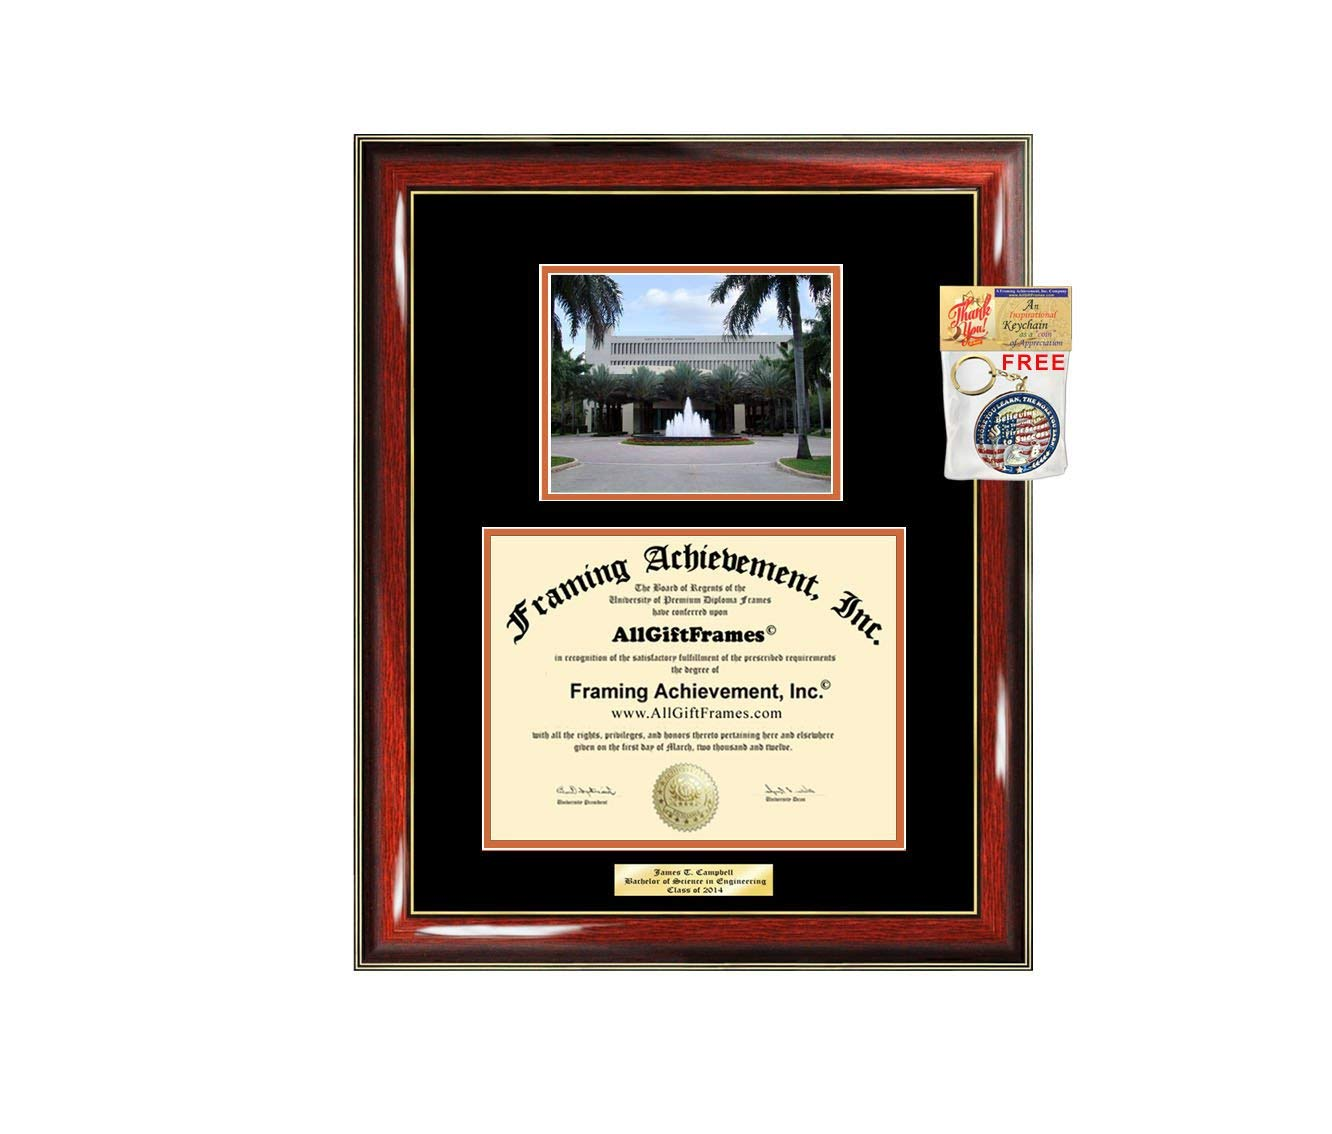 Diploma Frame University of Miami Graduation Gift Idea Engraved Picture Frames Engraving Degree Cheap Graduate Bachelor Masters MBA PHD Doctorate School